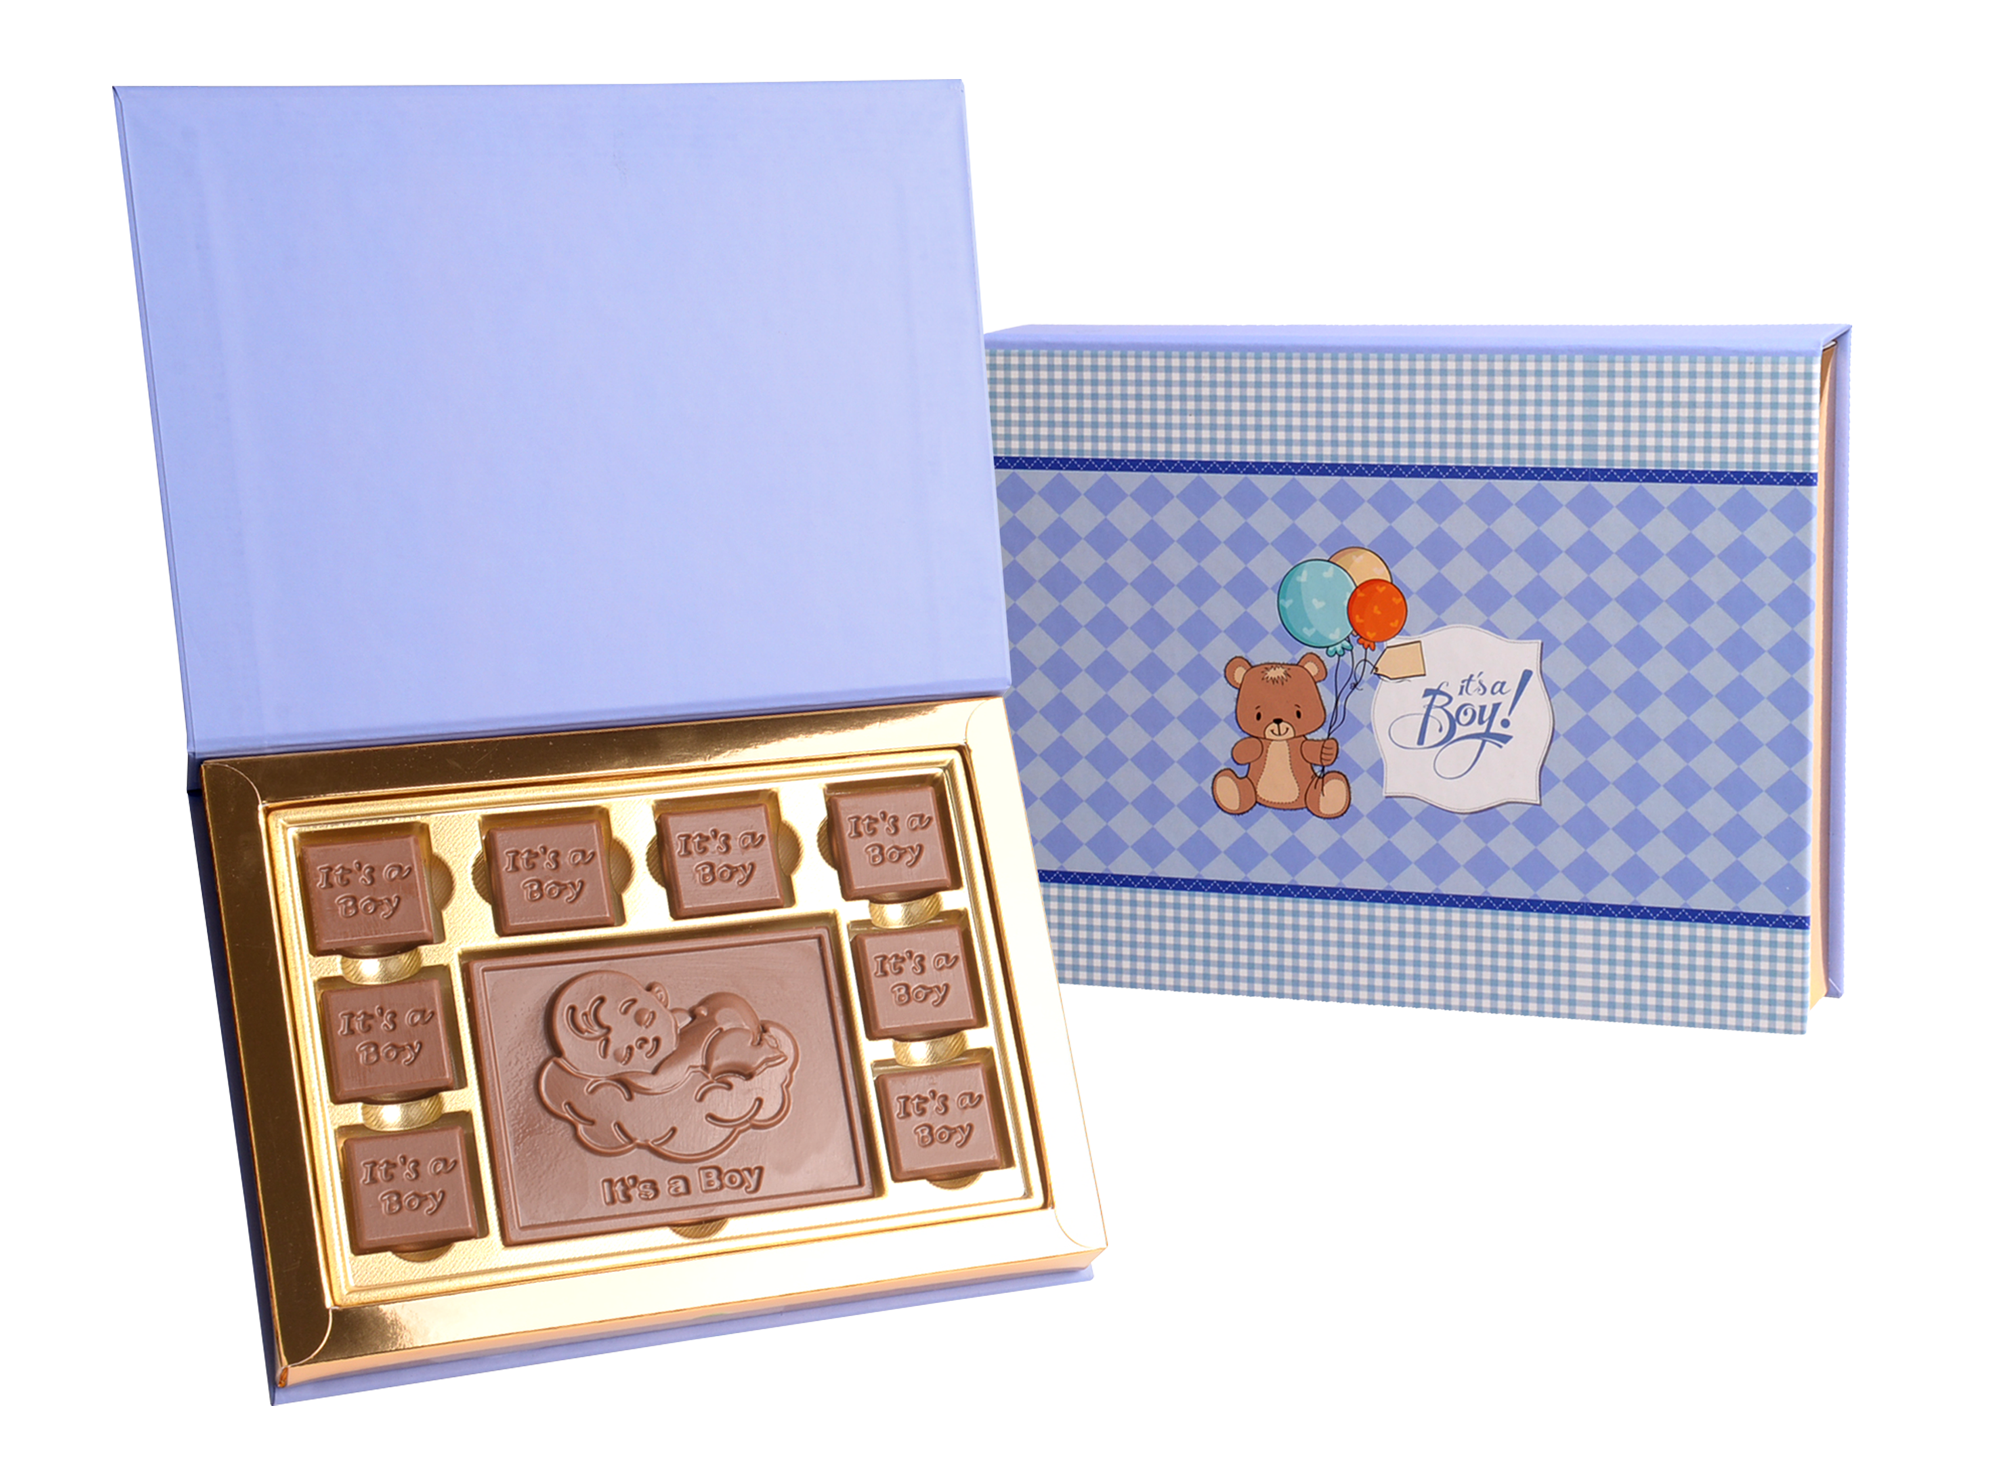 Gracious It's A Boy, 8 Pcs + Bar In Customized Belgian Chocolate